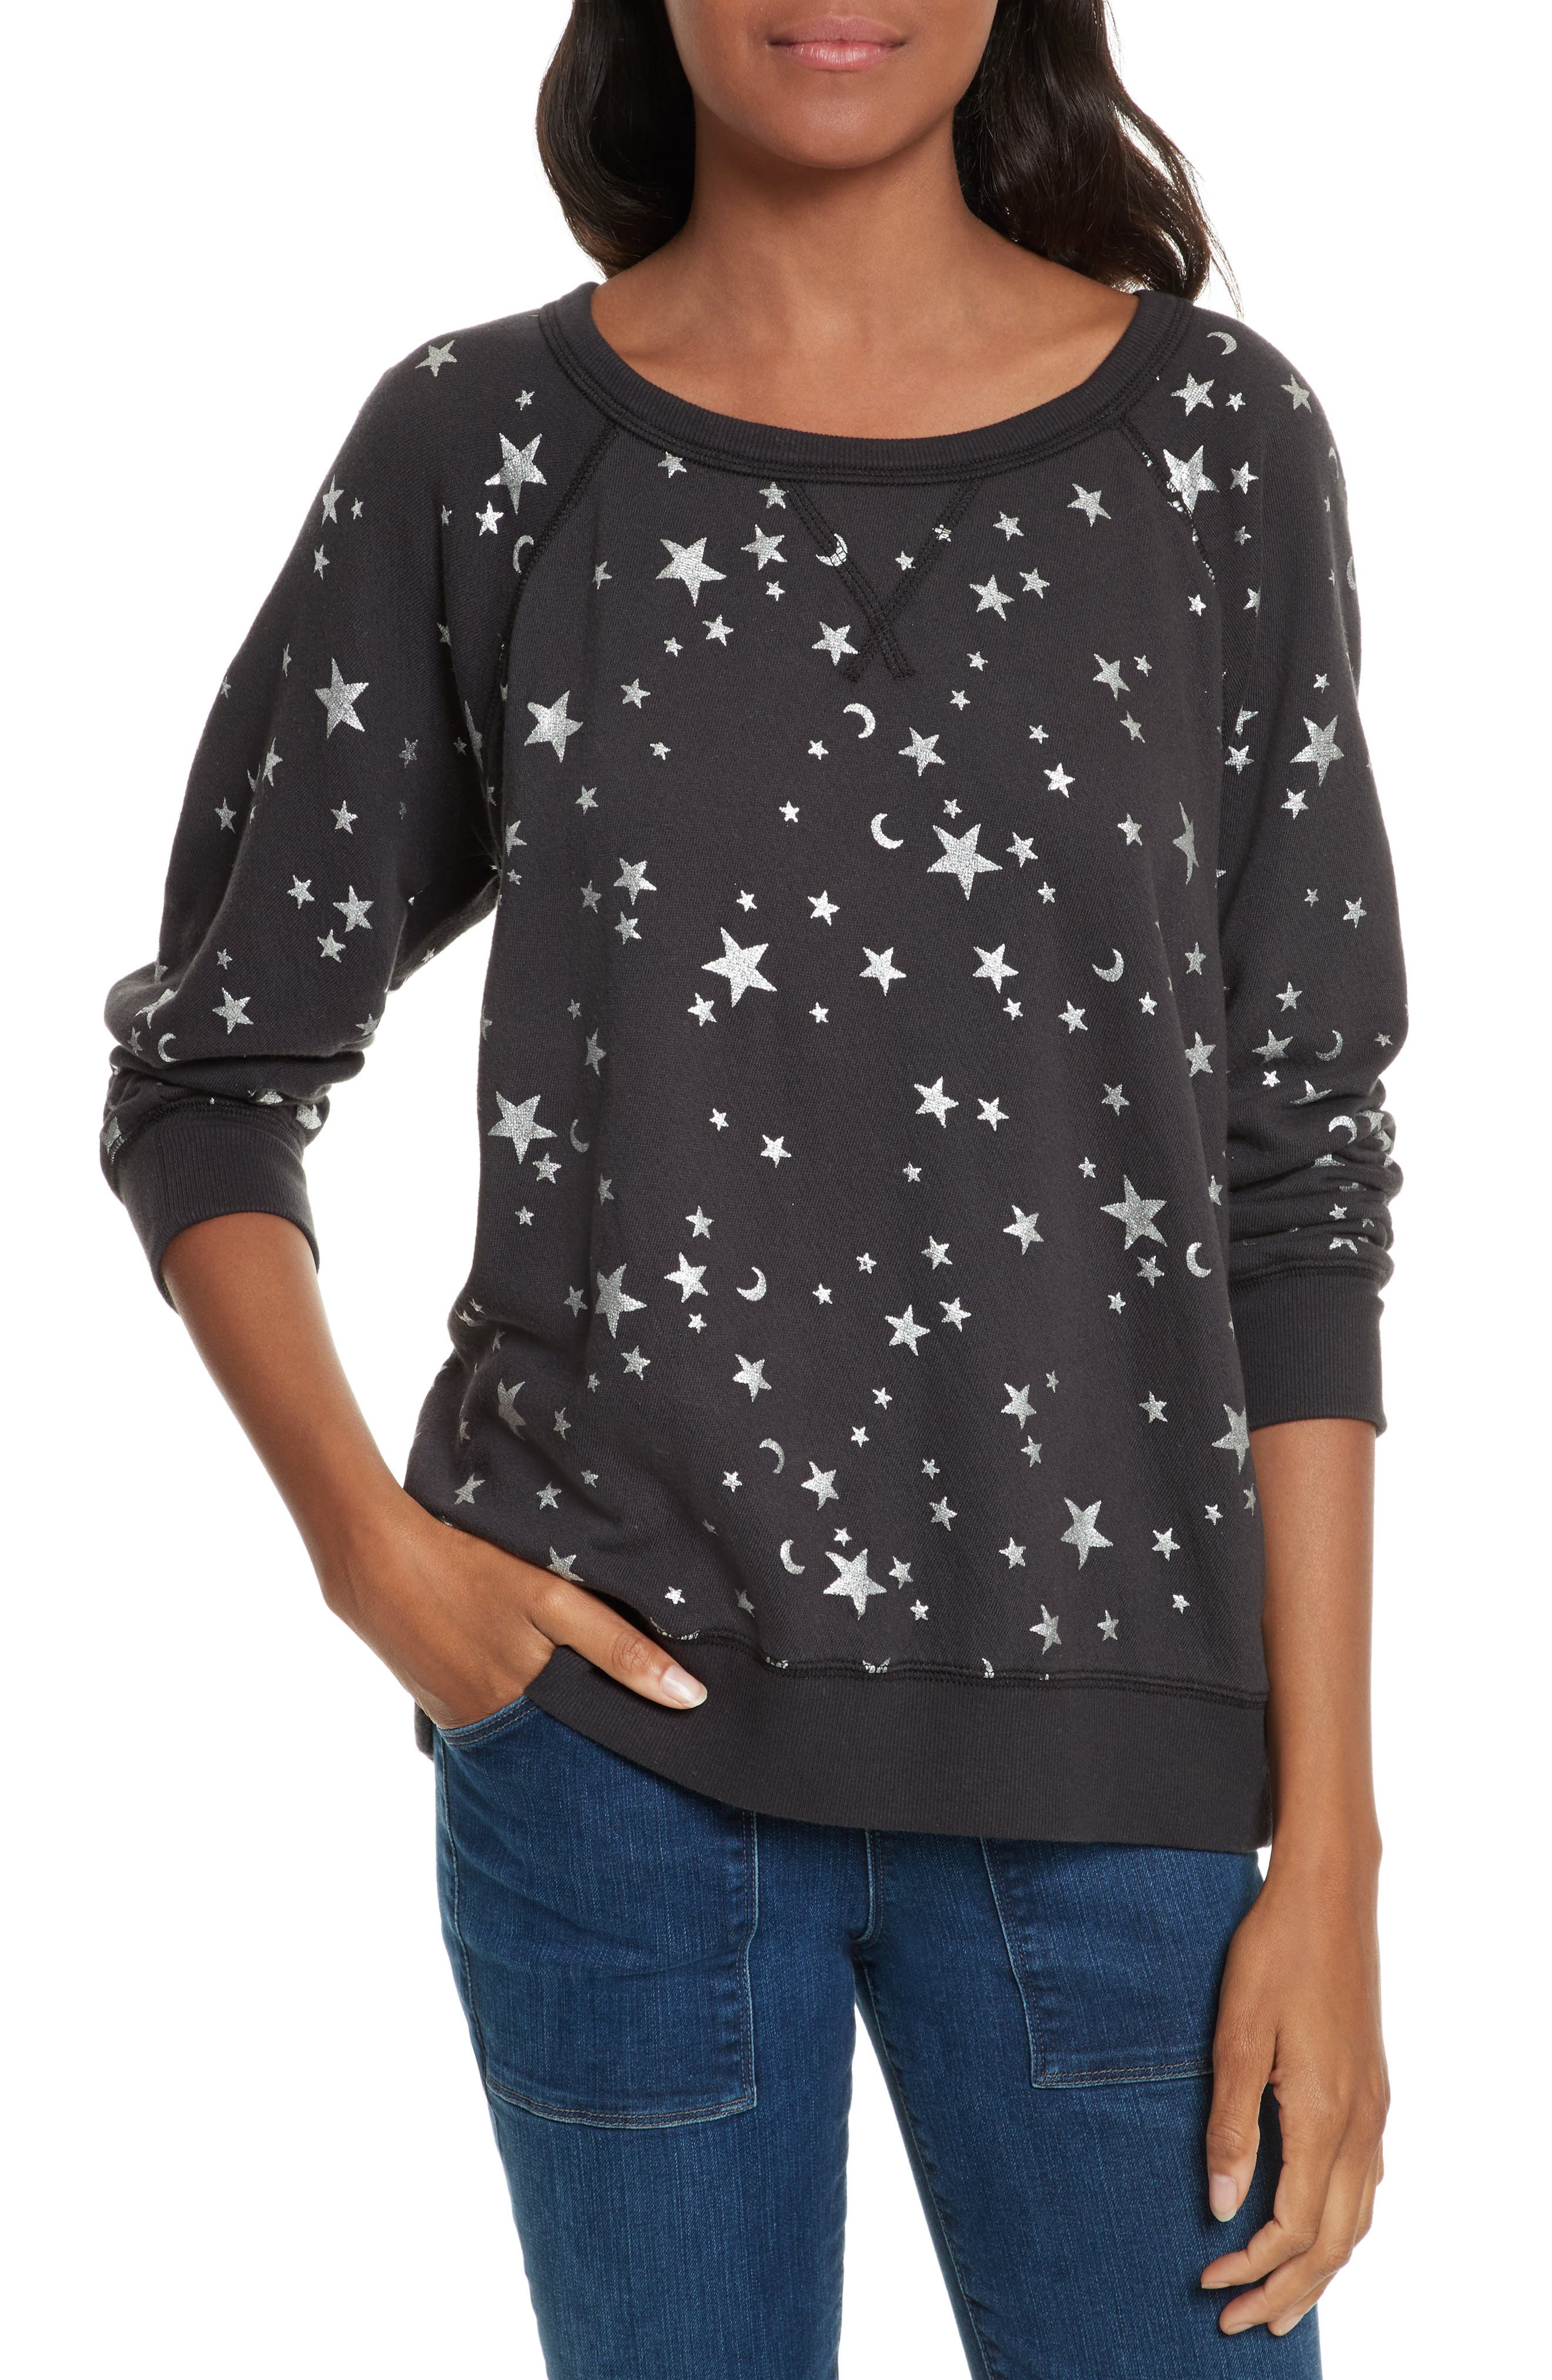 Alternate Image 1 Selected - Joie Edrie Foil Print Sweatshirt